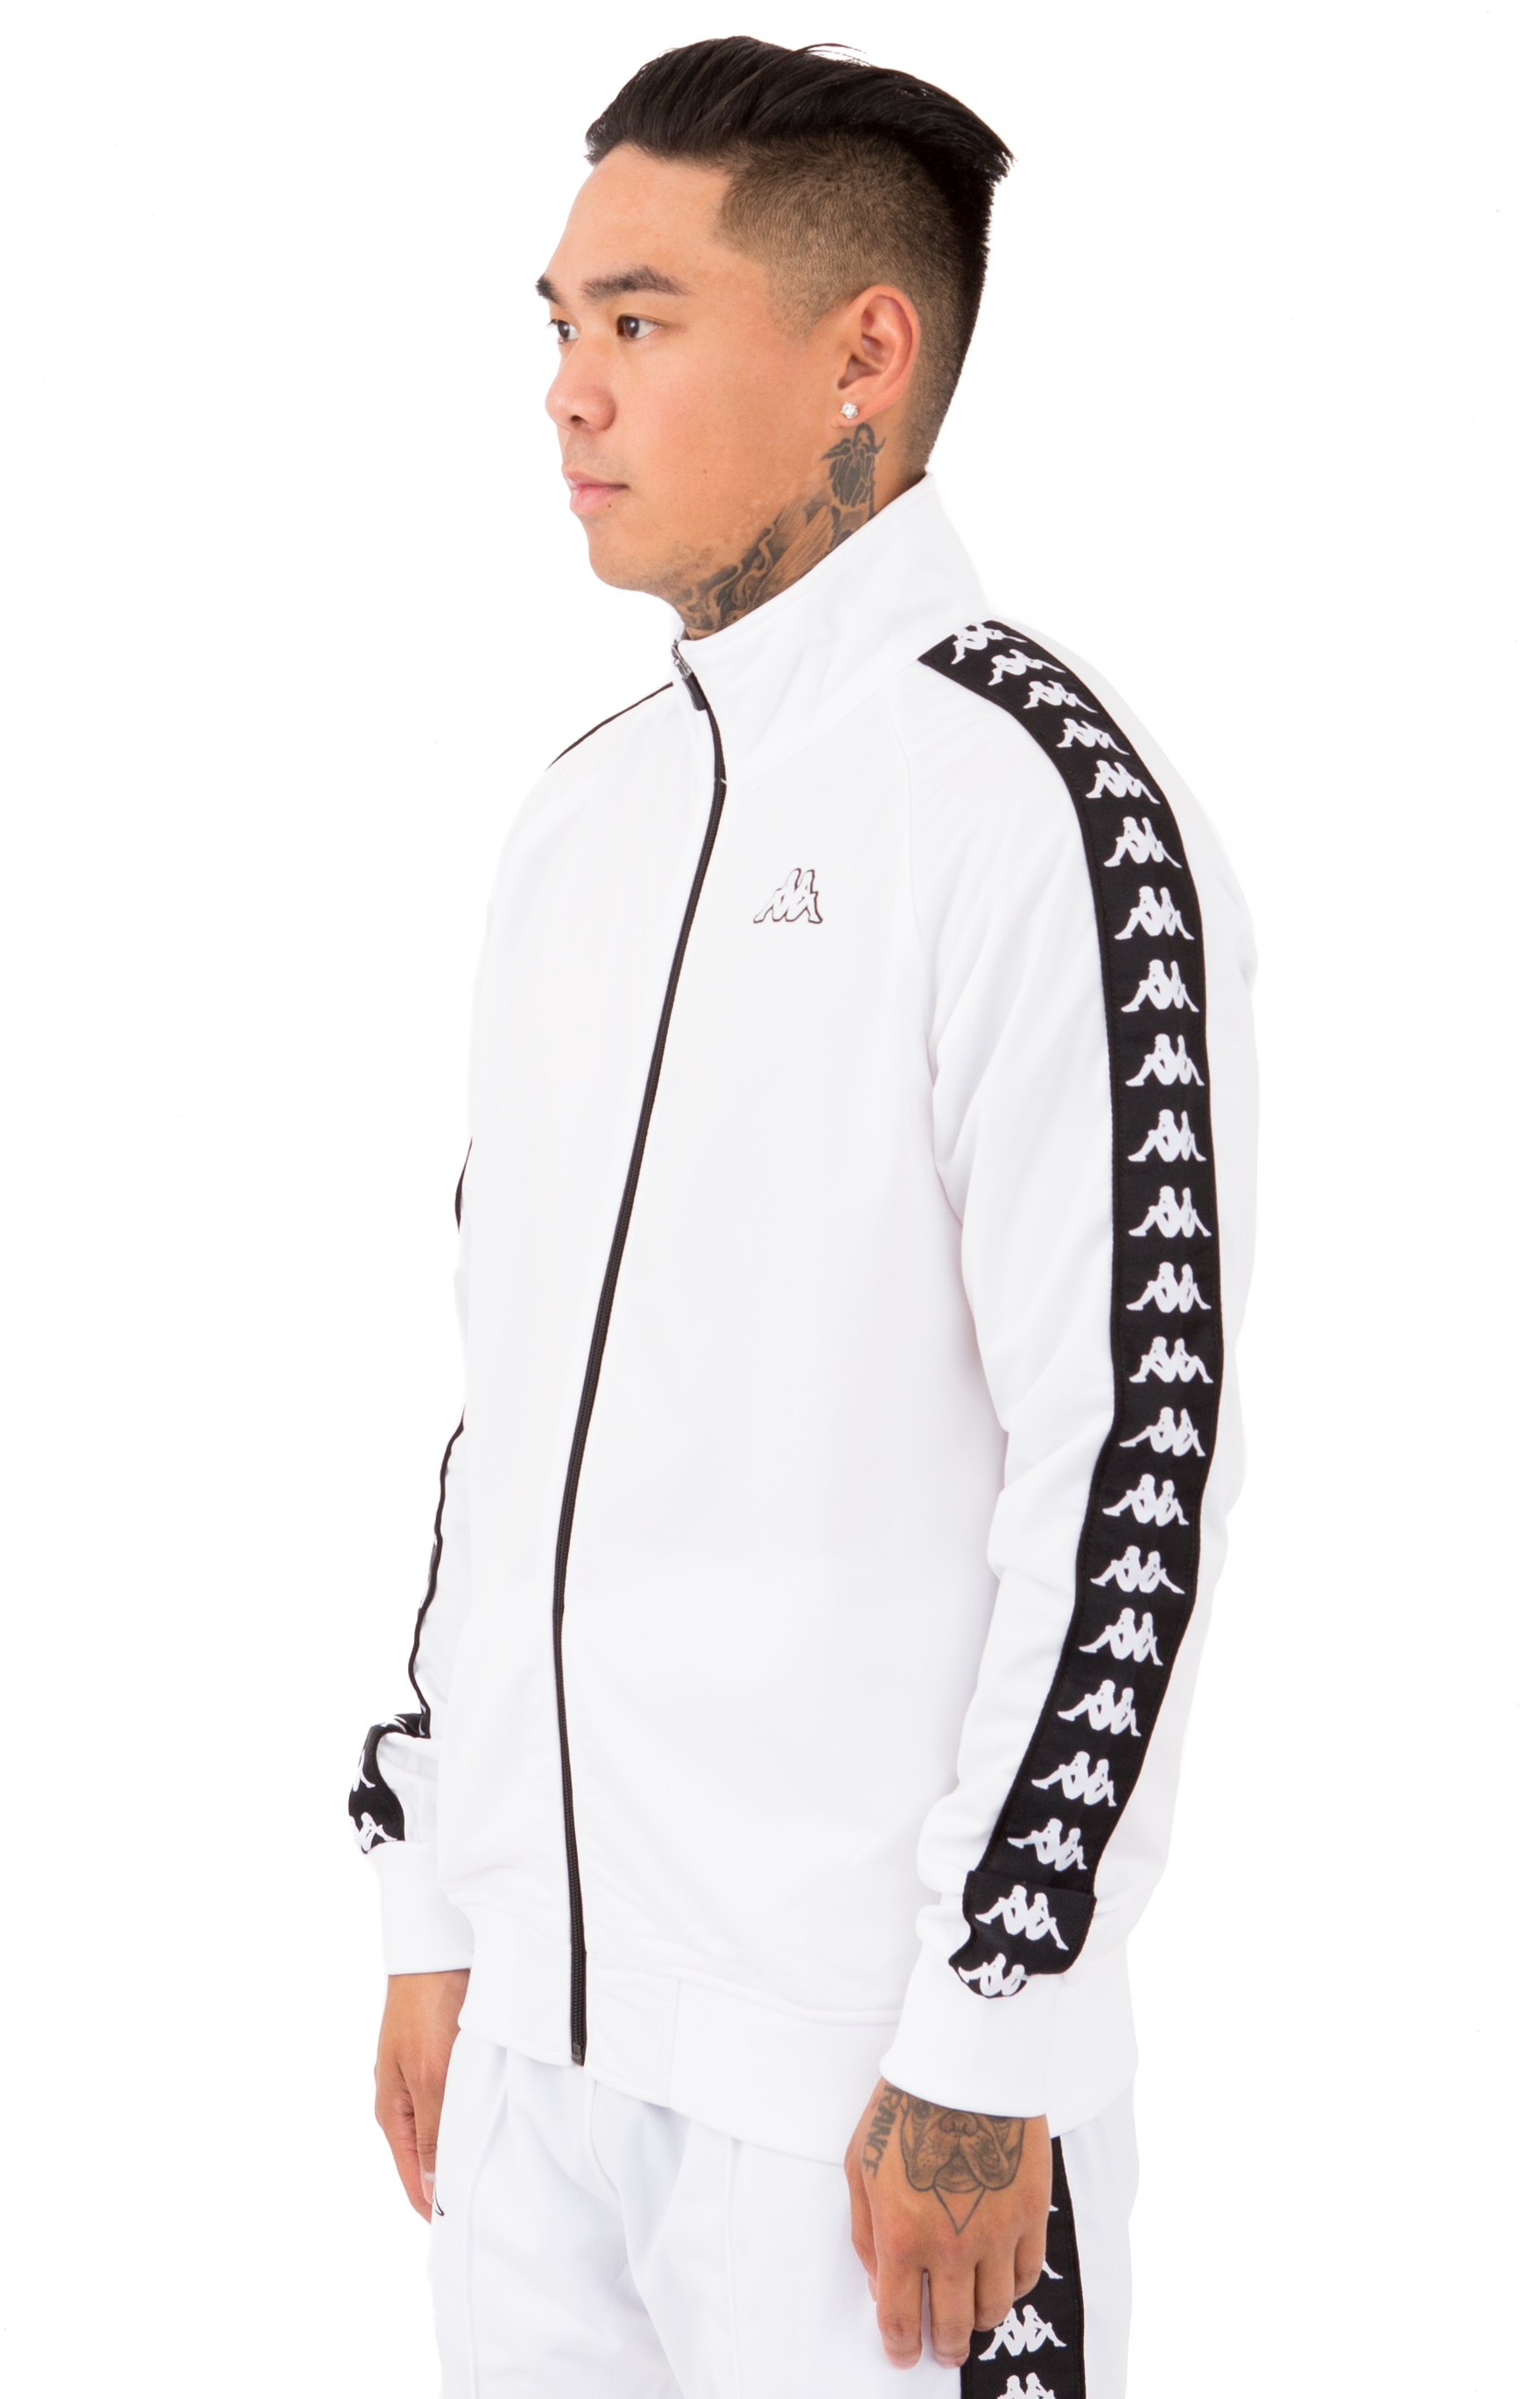 Kappa, 222 Banda Anniston Slim Jacket - White/Black